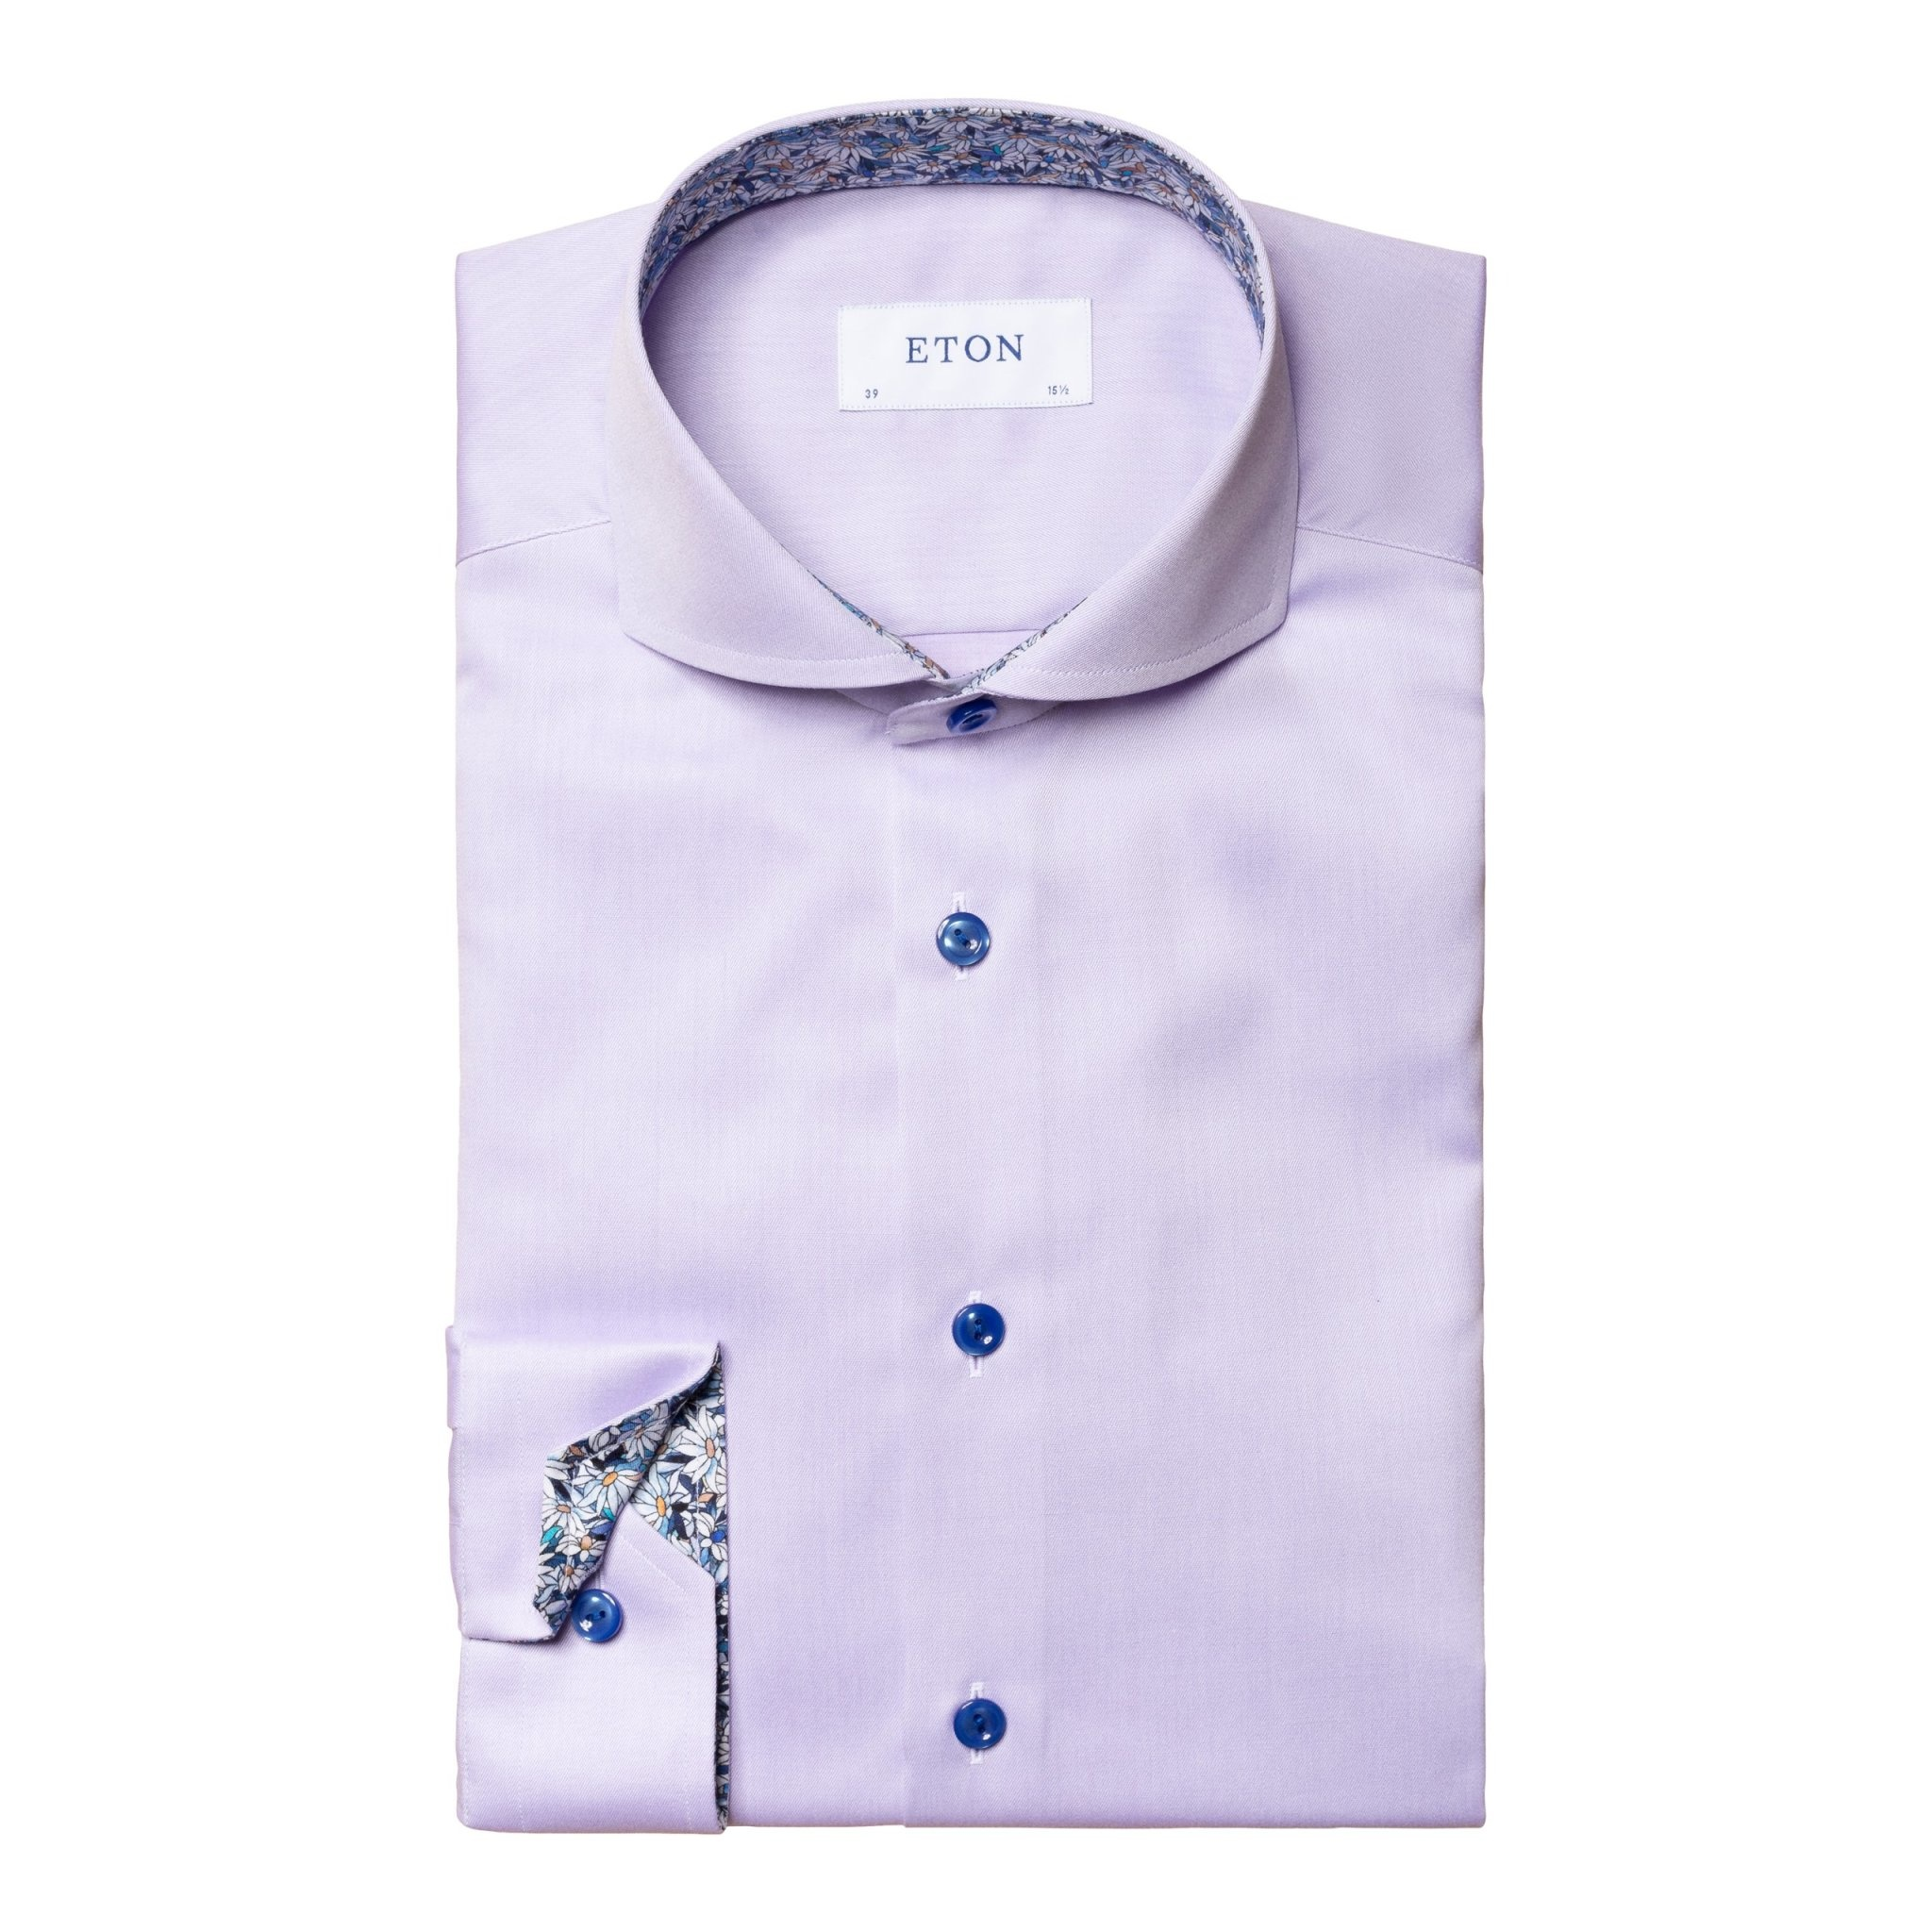 Eton Signature Twill with floral daisy trim - Violet